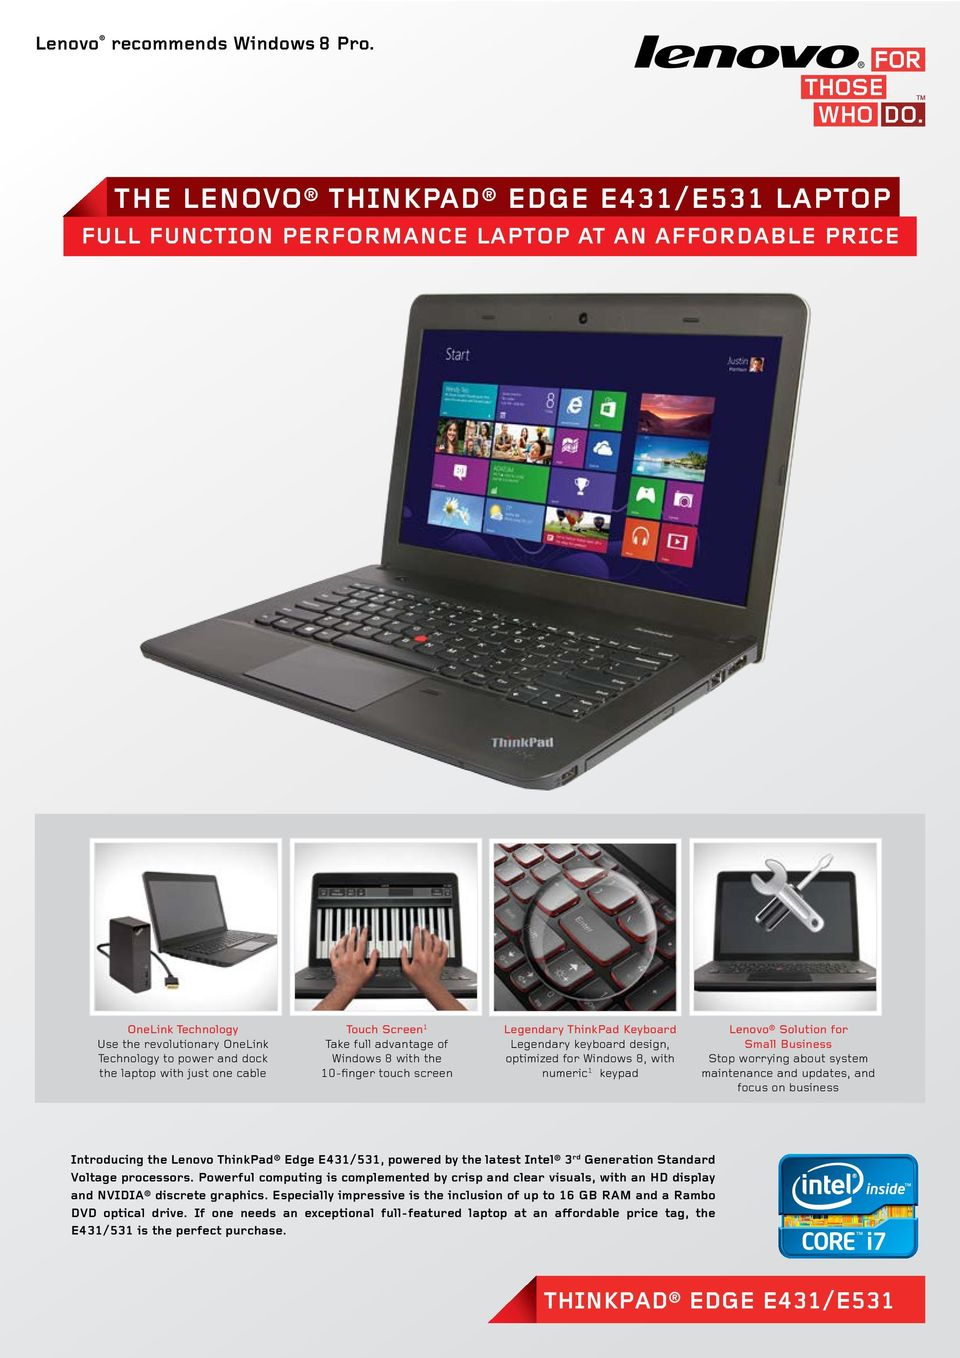 one cable Touch Screen 1 Take full advantage of Windows 8 with the 10-finger touch screen Legendary ThinkPad Keyboard BACKLIT Legendary ACCUTYPE keyboard KEYBOARD design, optimized for Windows 8,